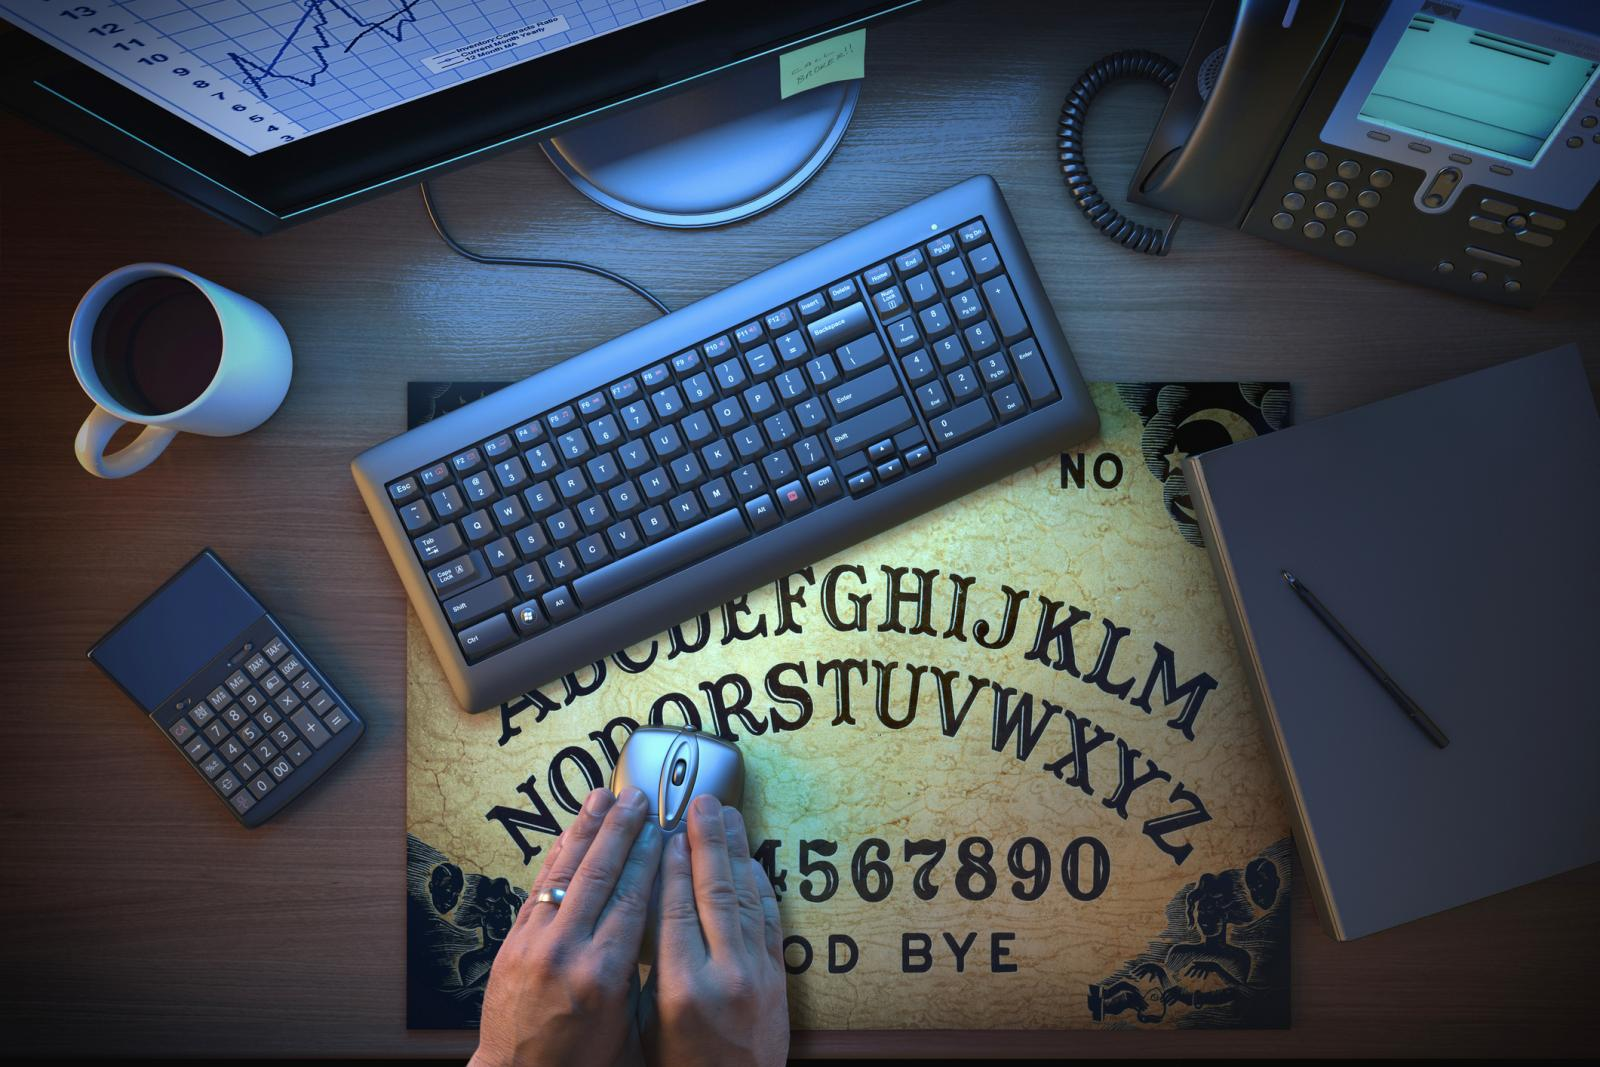 Hands using computer mouse on Ouija board